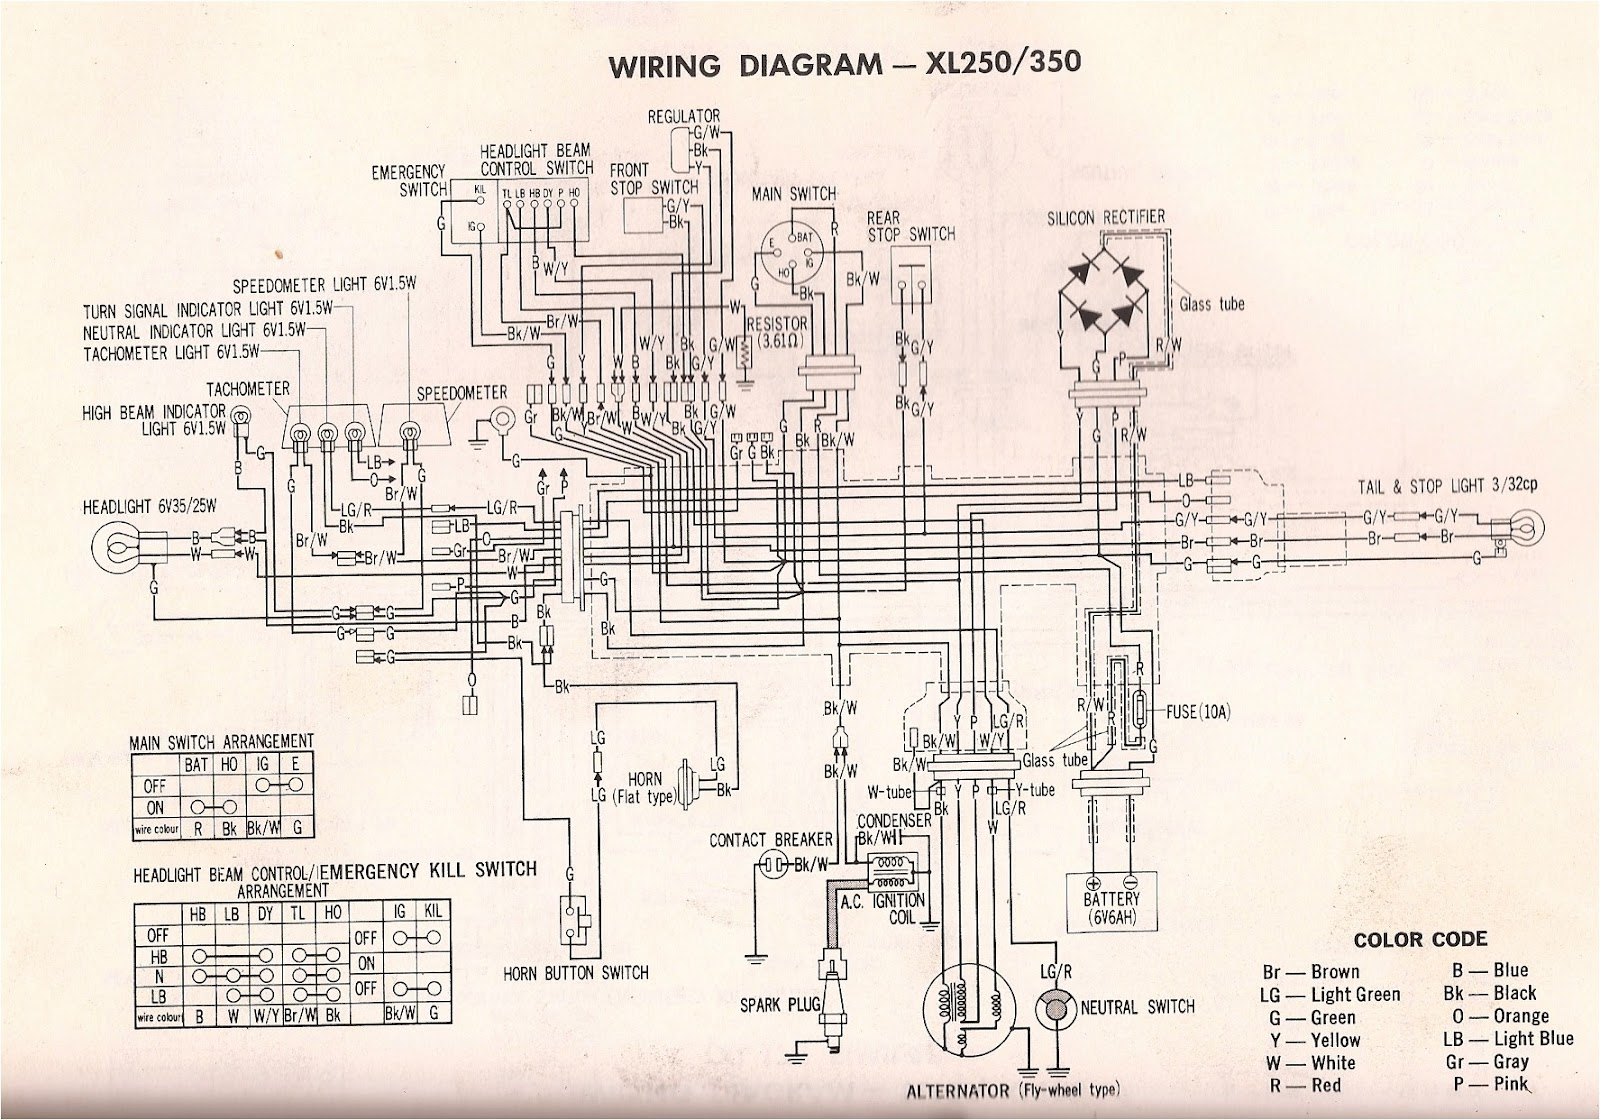 Motorcycle Oil Pump moreover Kawasaki Er 5 Wiring Diagram as well Arctic Cat Bearcat 454 Wiring Diagram also Automatioc Lifan 250 Wiring Diagram in addition Kawasaki G5 100 Wiring Diagram. on kawasaki ke100 wiring diagram